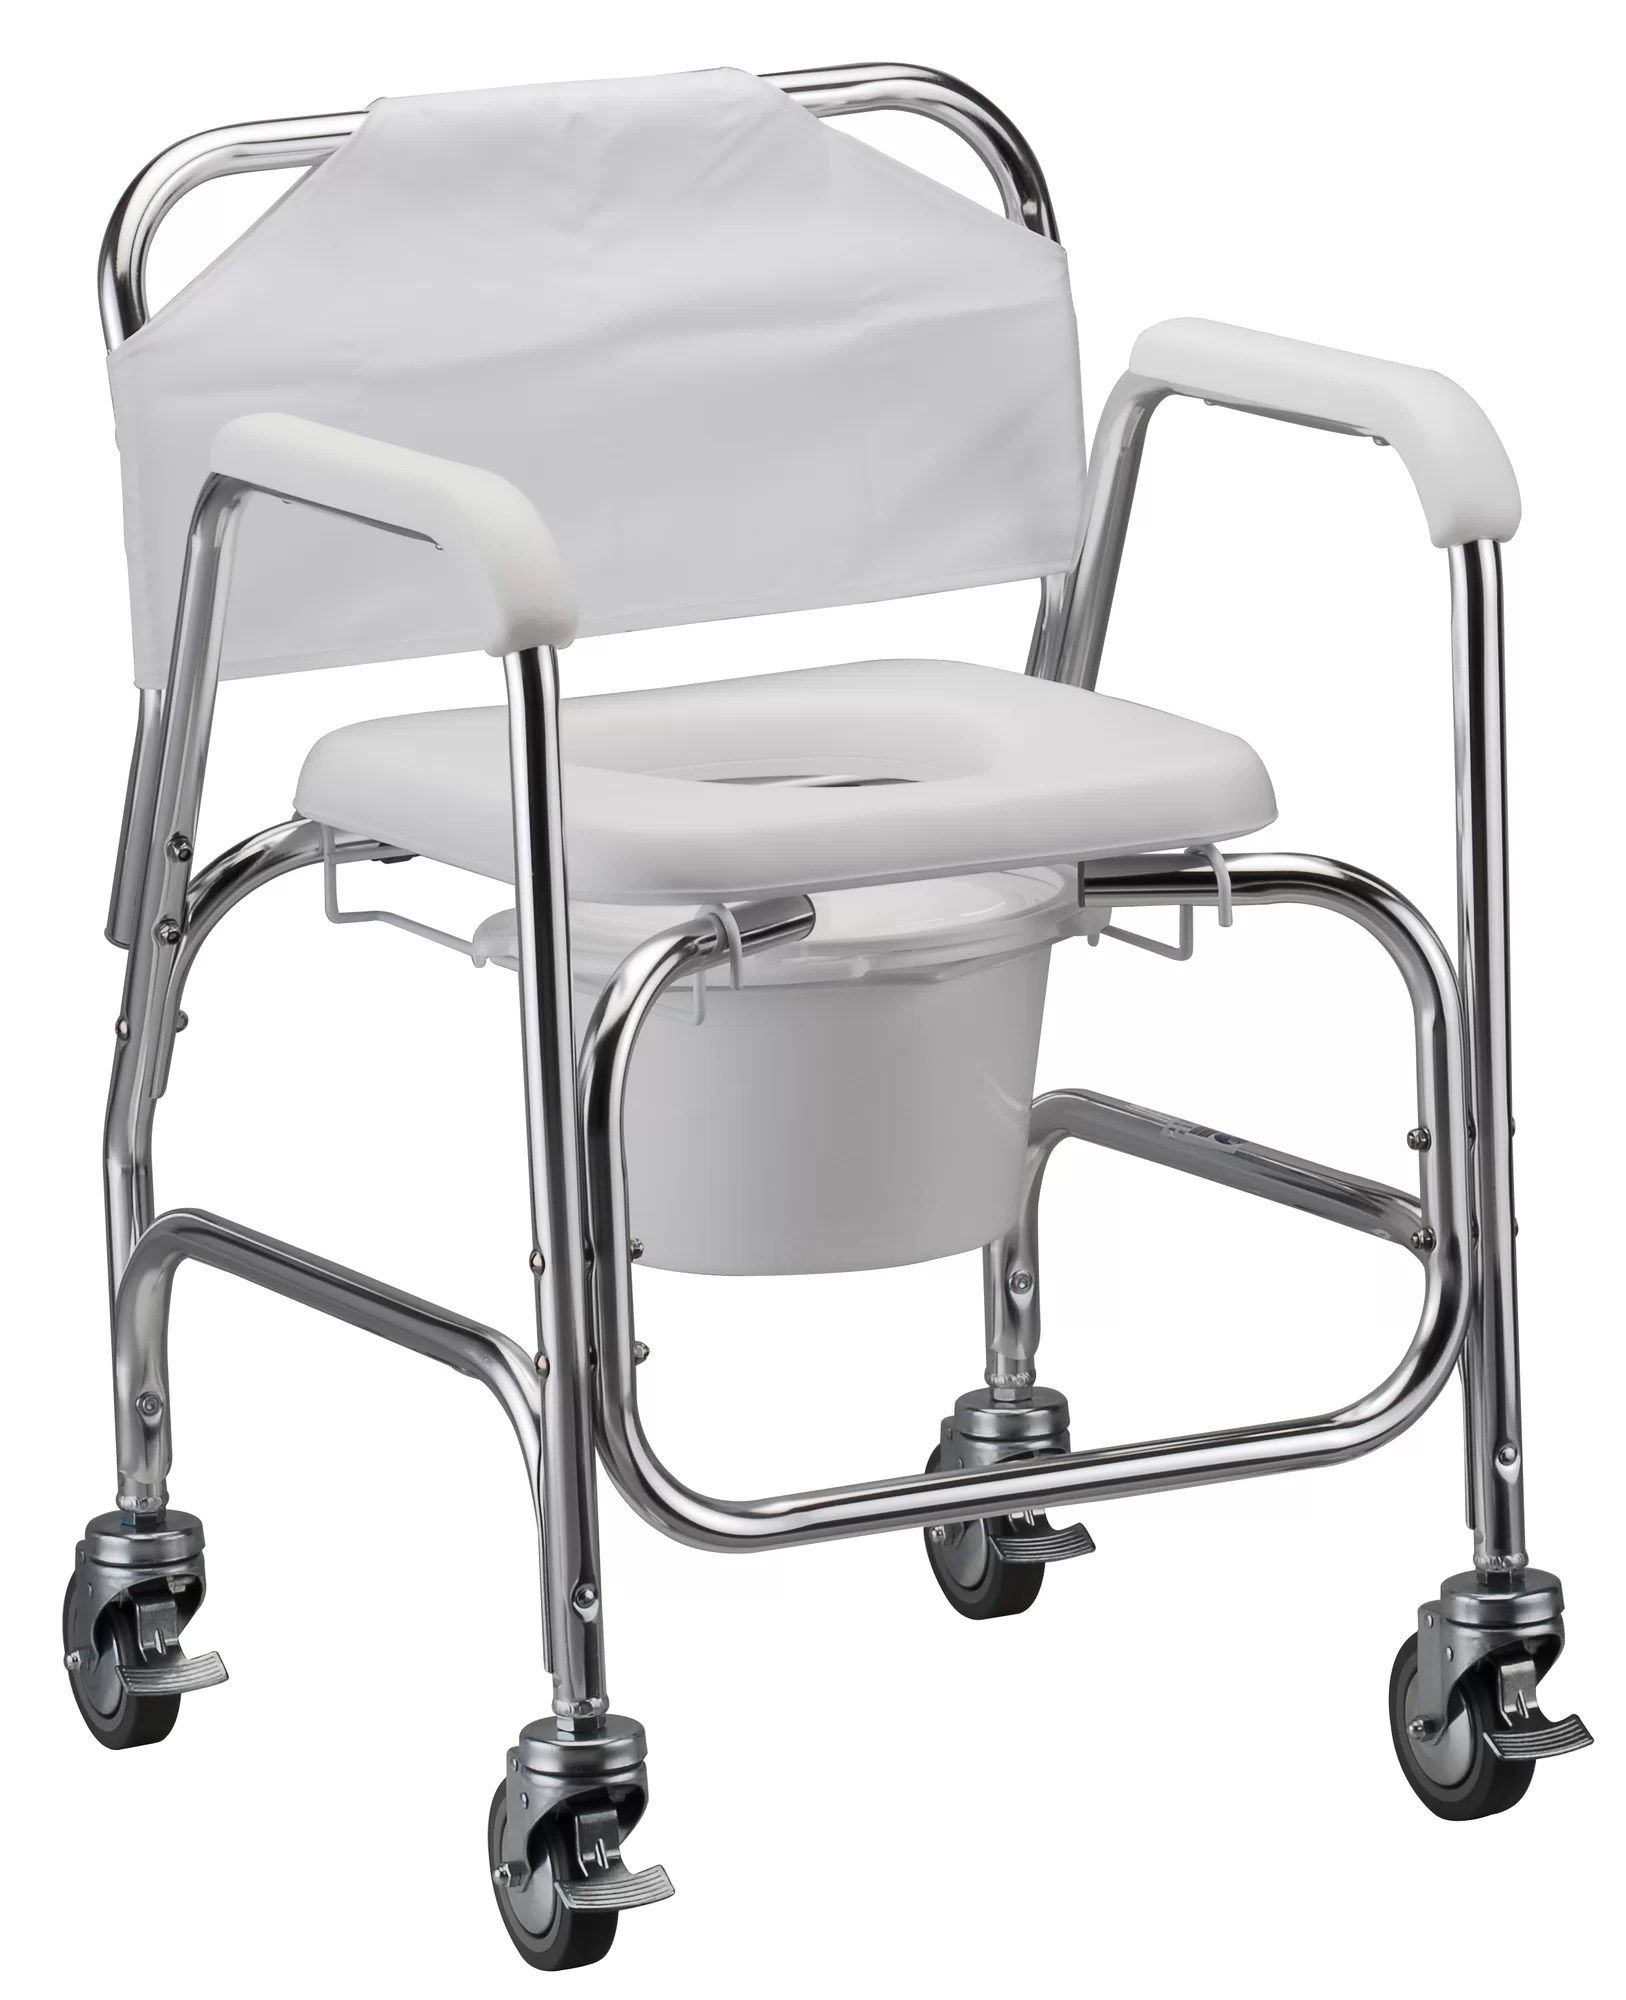 Shower Commode Chair Nova Medical Bathroom Deluxe Shower Chair And Commode With